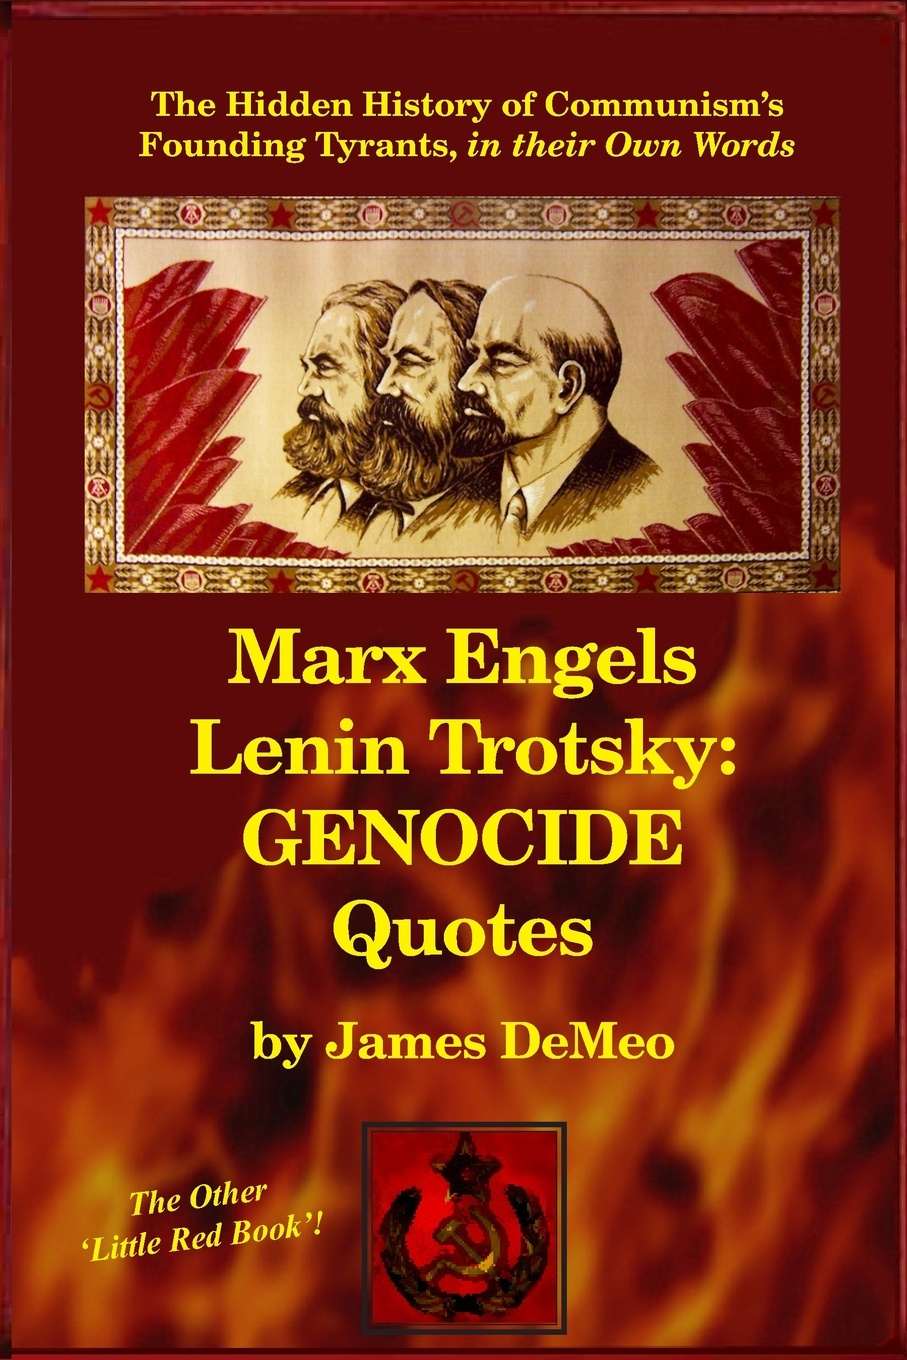 James DeMeo MARX ENGELS LENIN TROTSKY. GENOCIDE QUOTES: The Hidden History of Communism's Founding Tyrants, in their Own Words max klim the epoch of stalin joseph stalin the way to power page 9